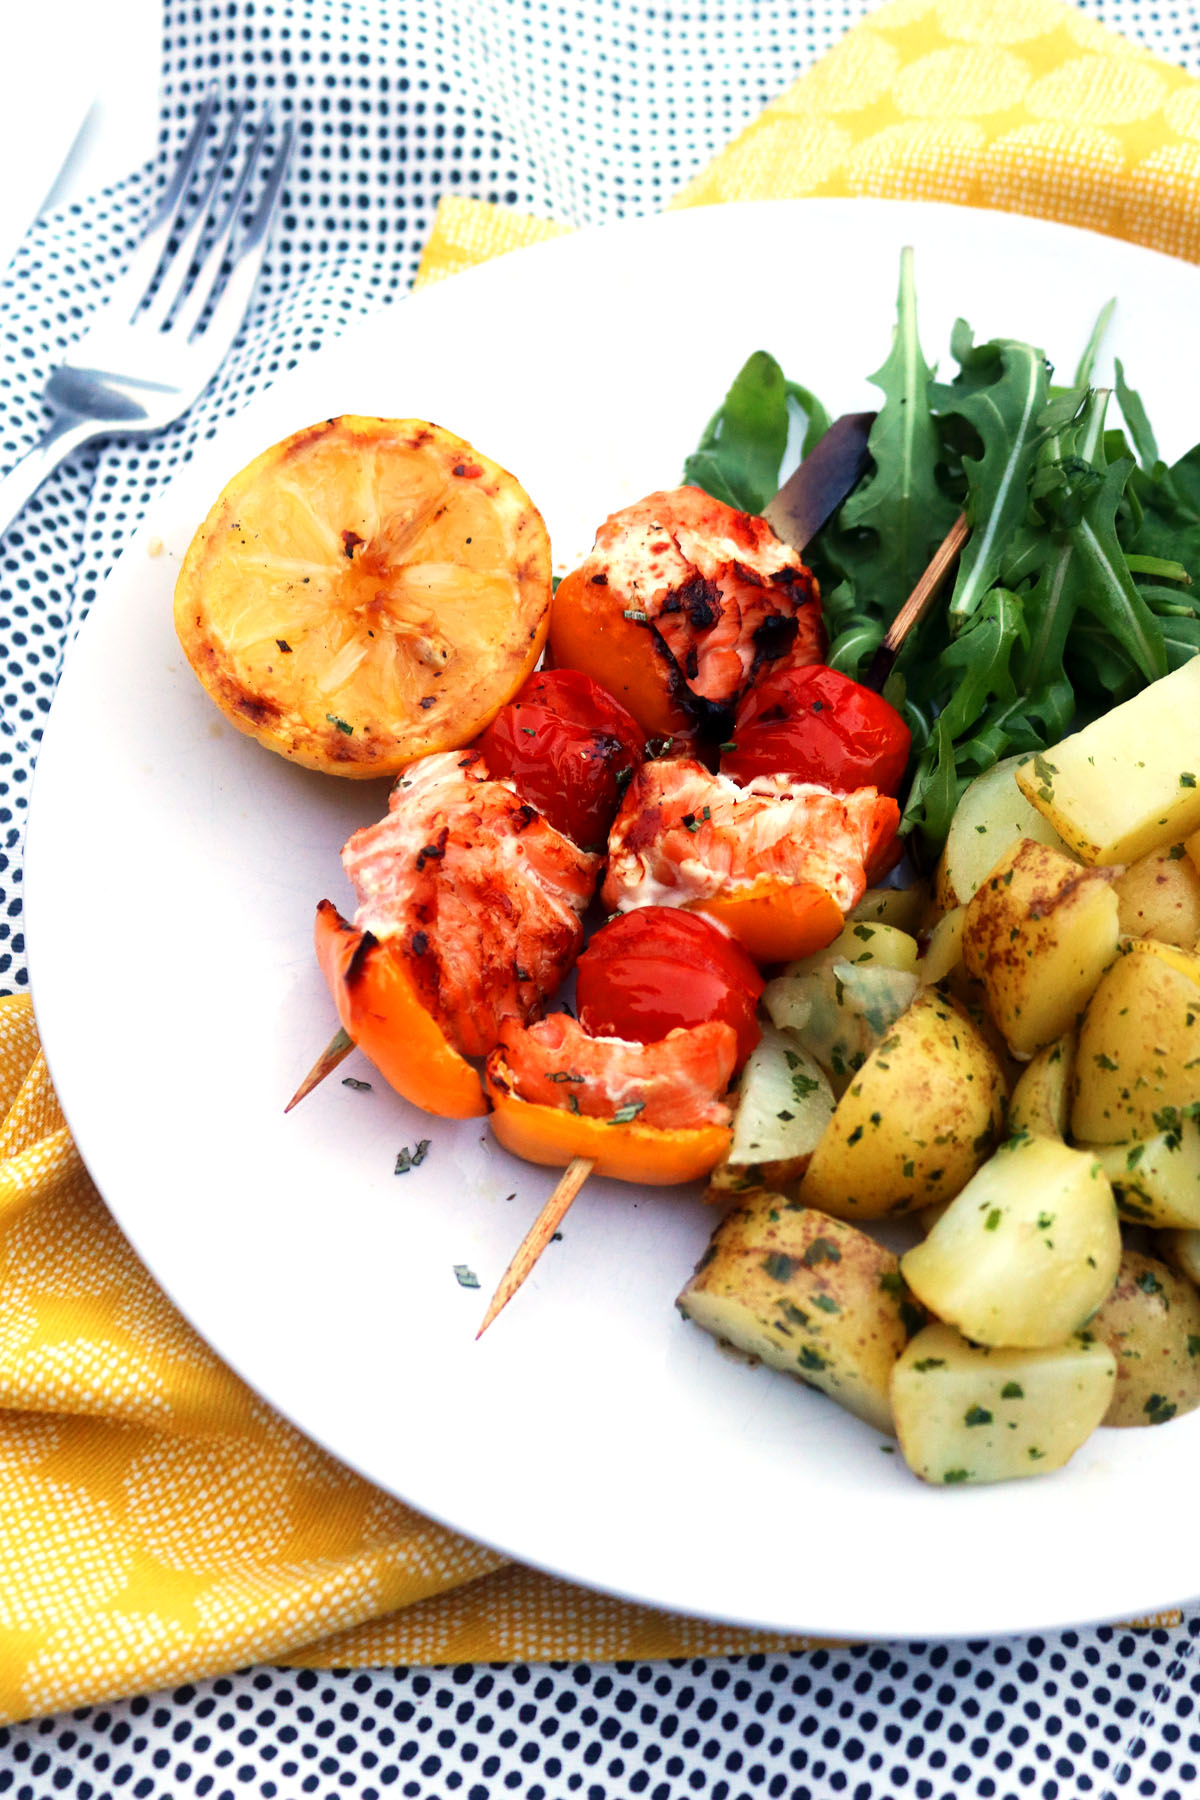 BBQ Salmon Skewers with herby potatoes and rocket 3